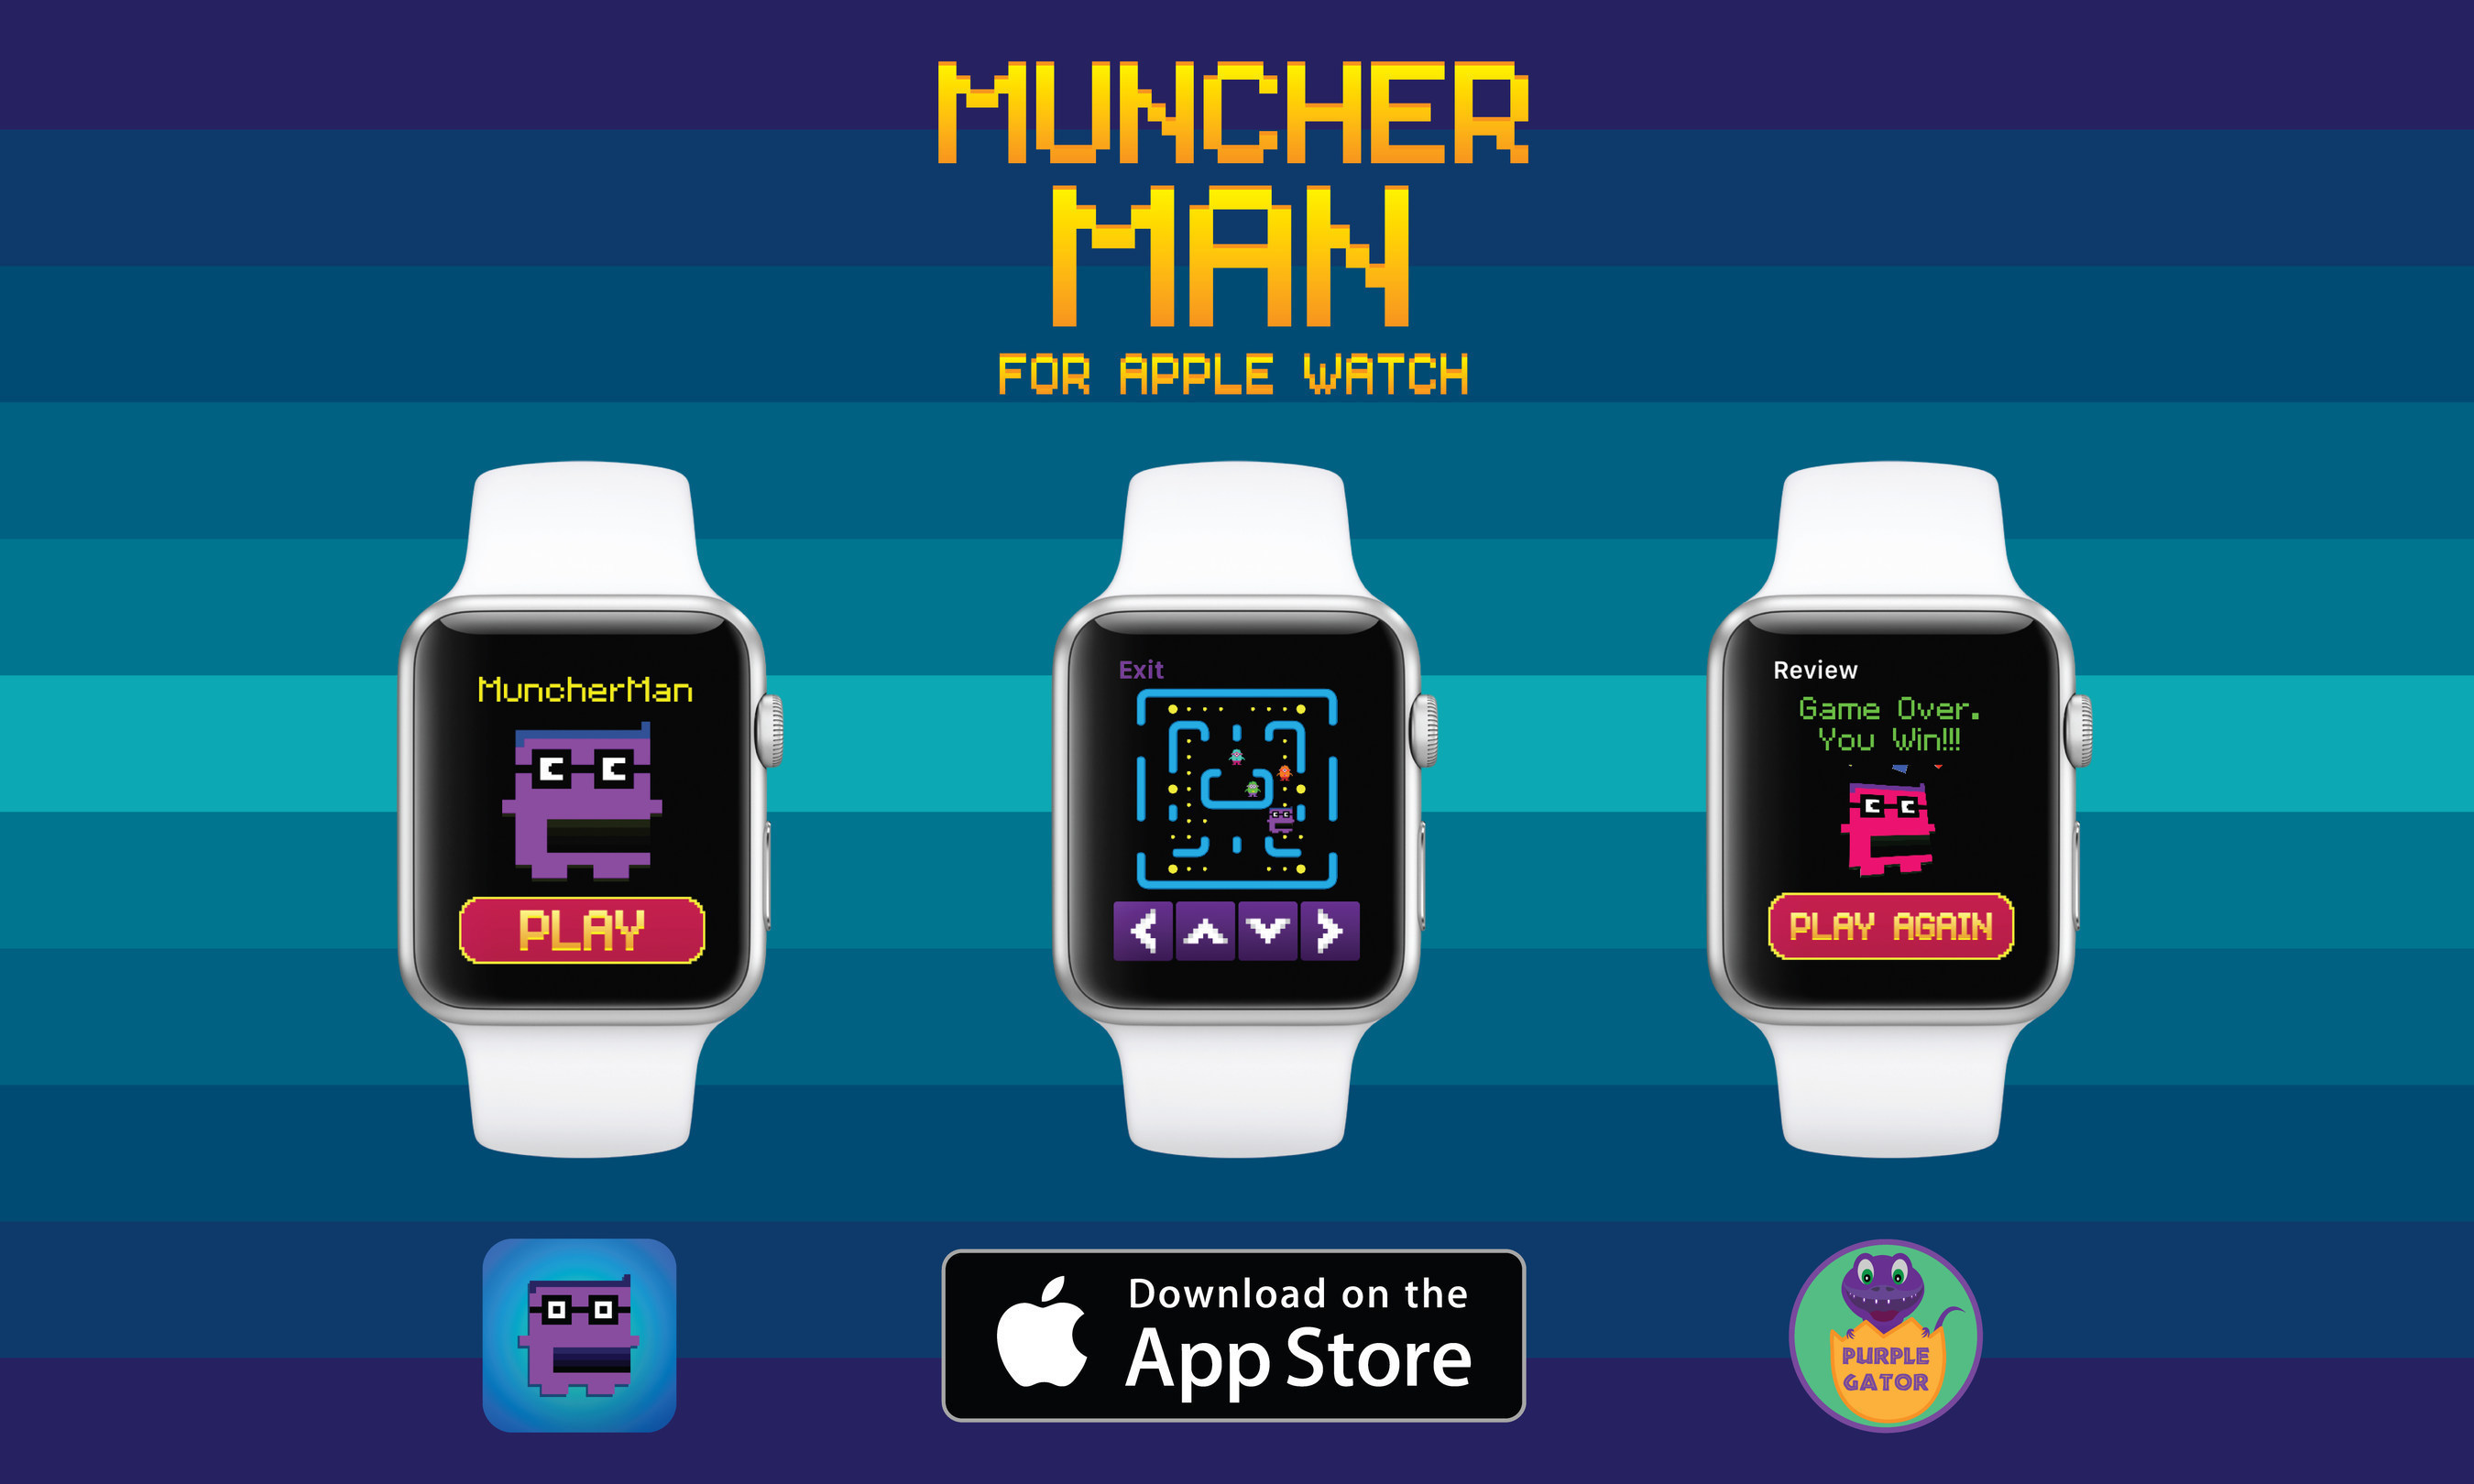 Purple Gator Launches MuncherMan For Apple Watch